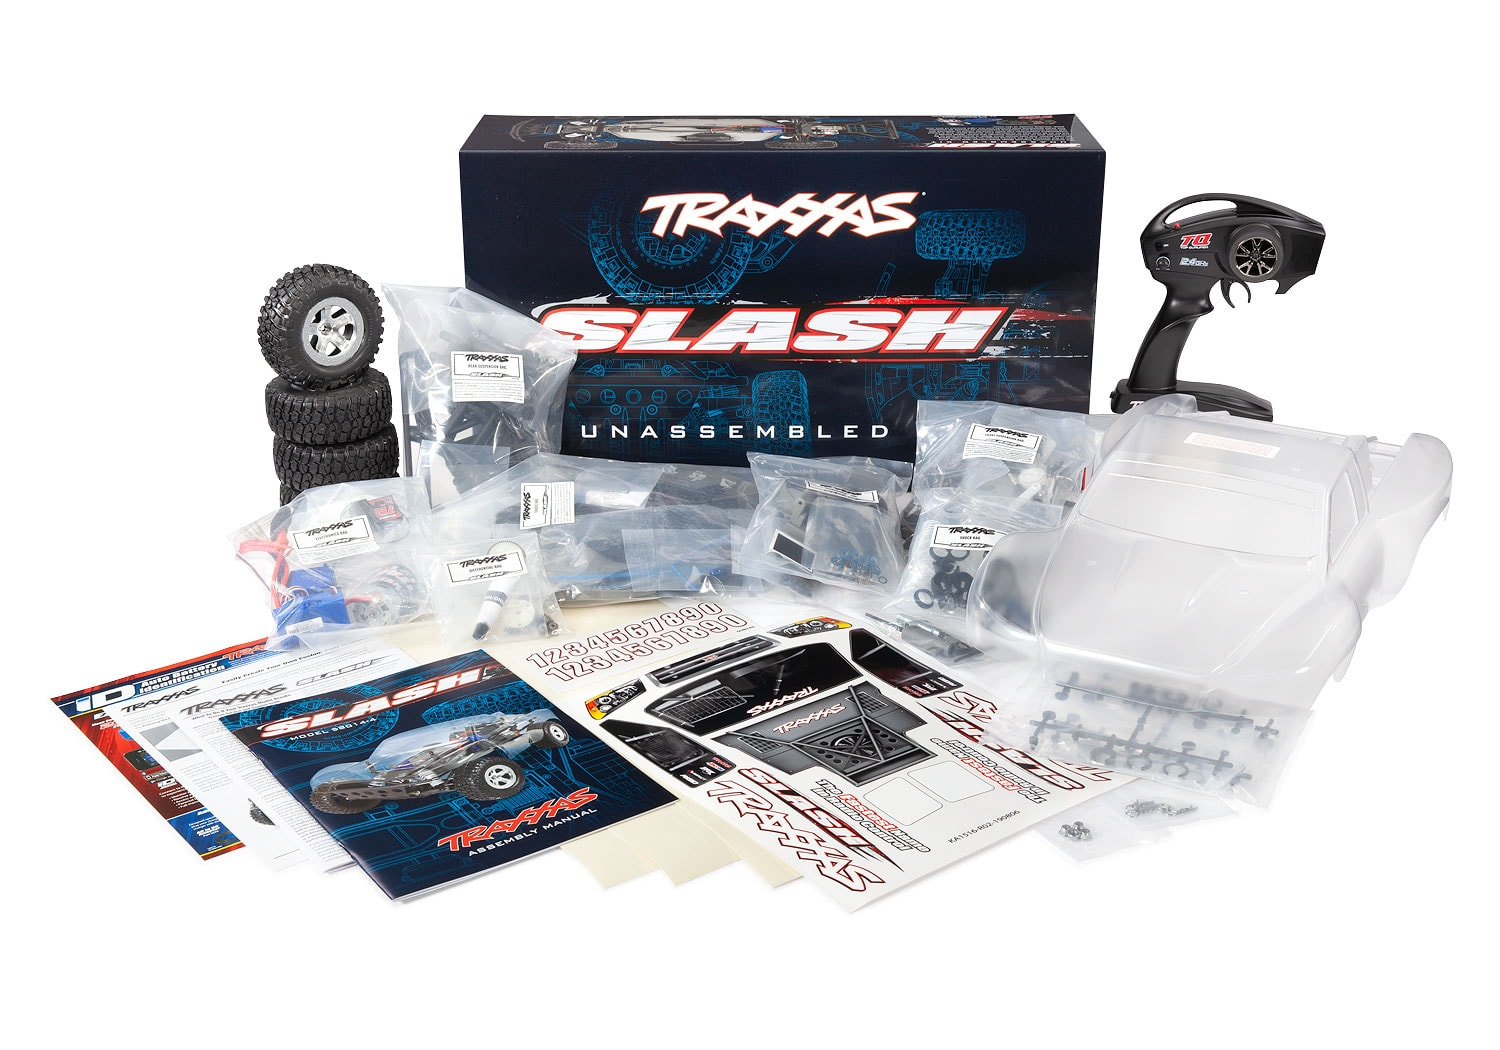 Build it & Bash it; The Traxxas Slash is Now Available as a Kit